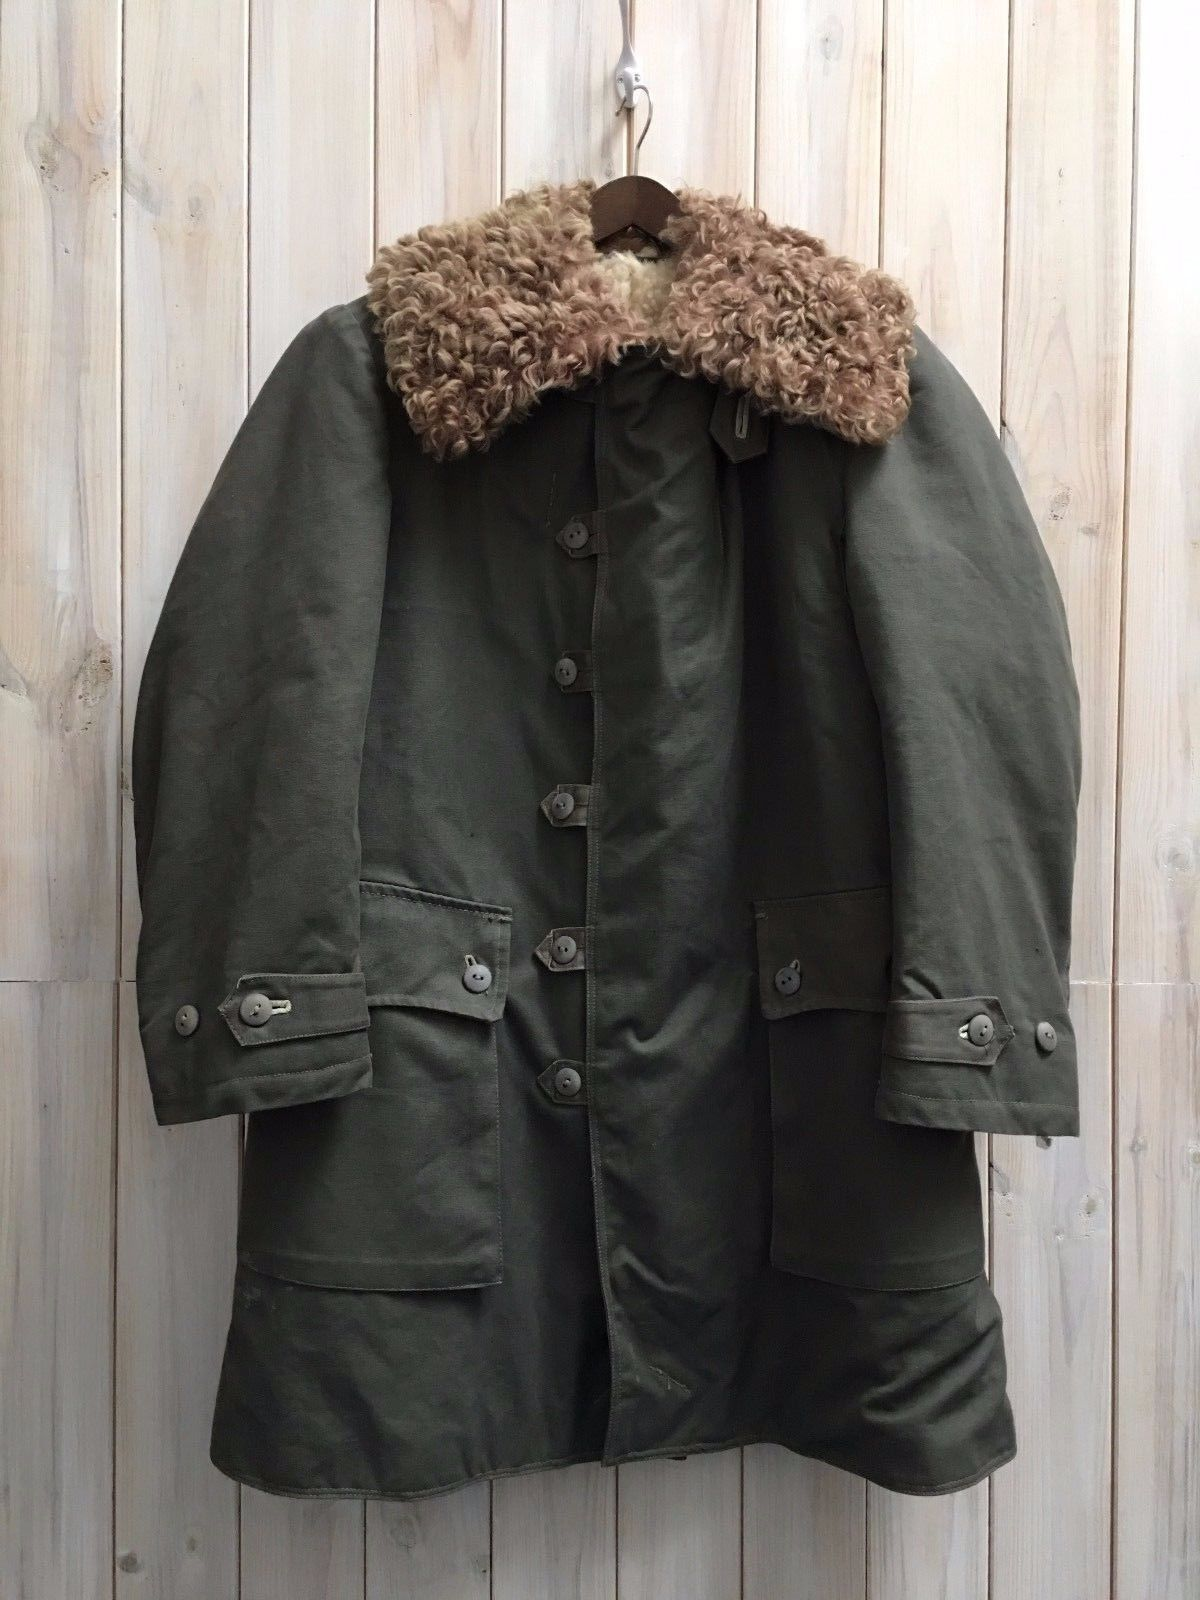 Vintage 1944 wwii #m1909 swedish army field coat #sheepskin canvas ...